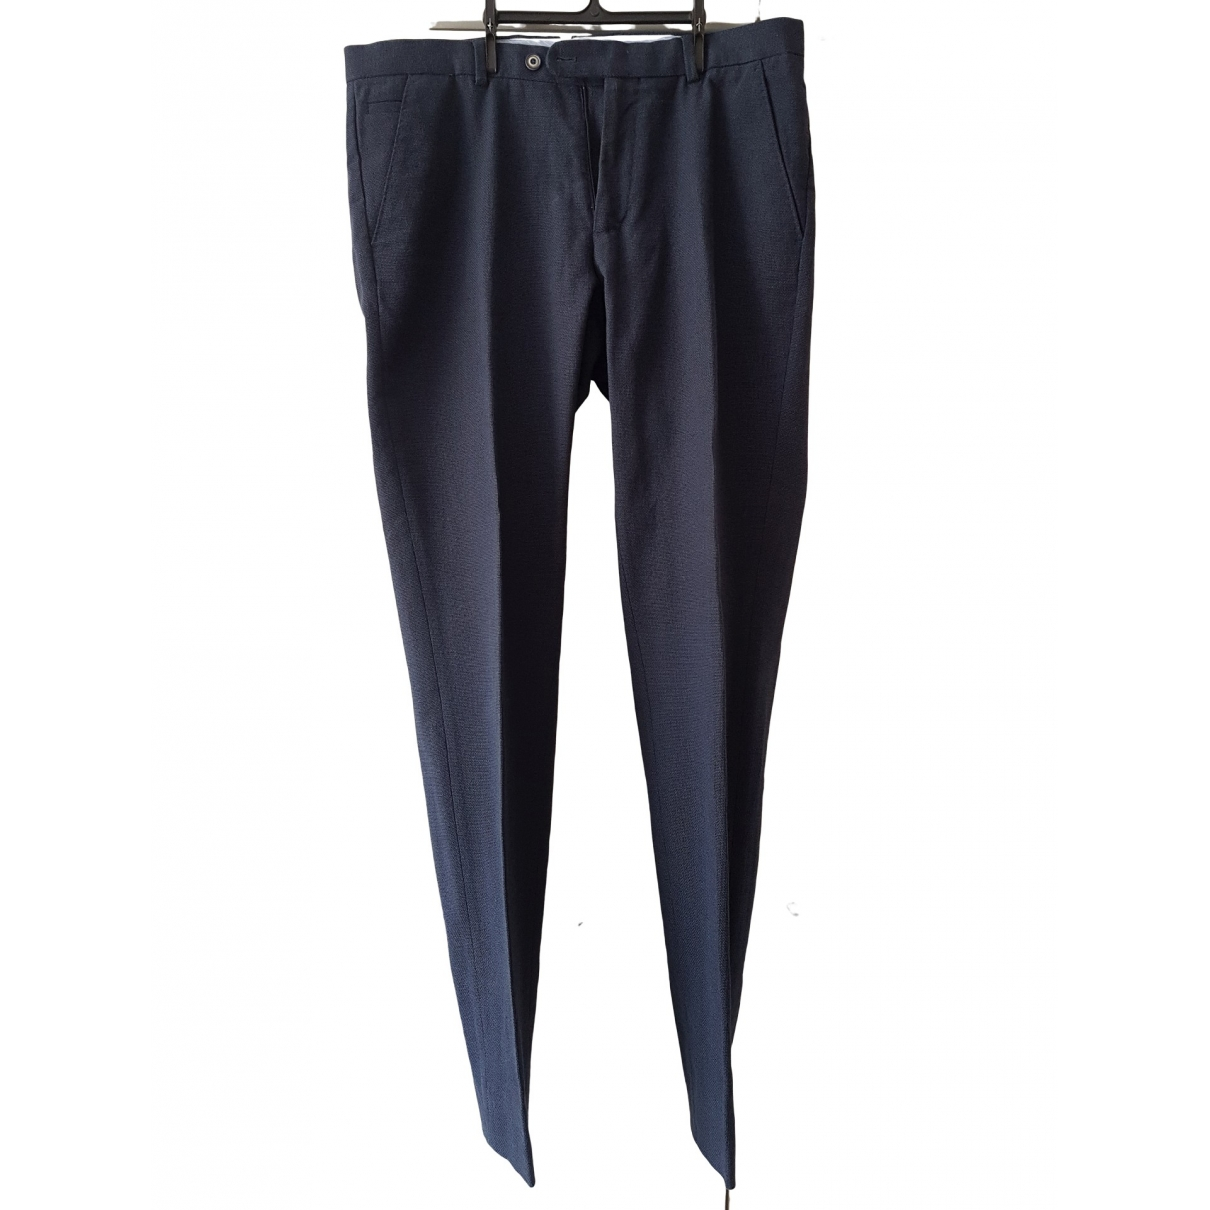 Massimo Dutti \N Navy Cotton Trousers for Men 32 UK - US